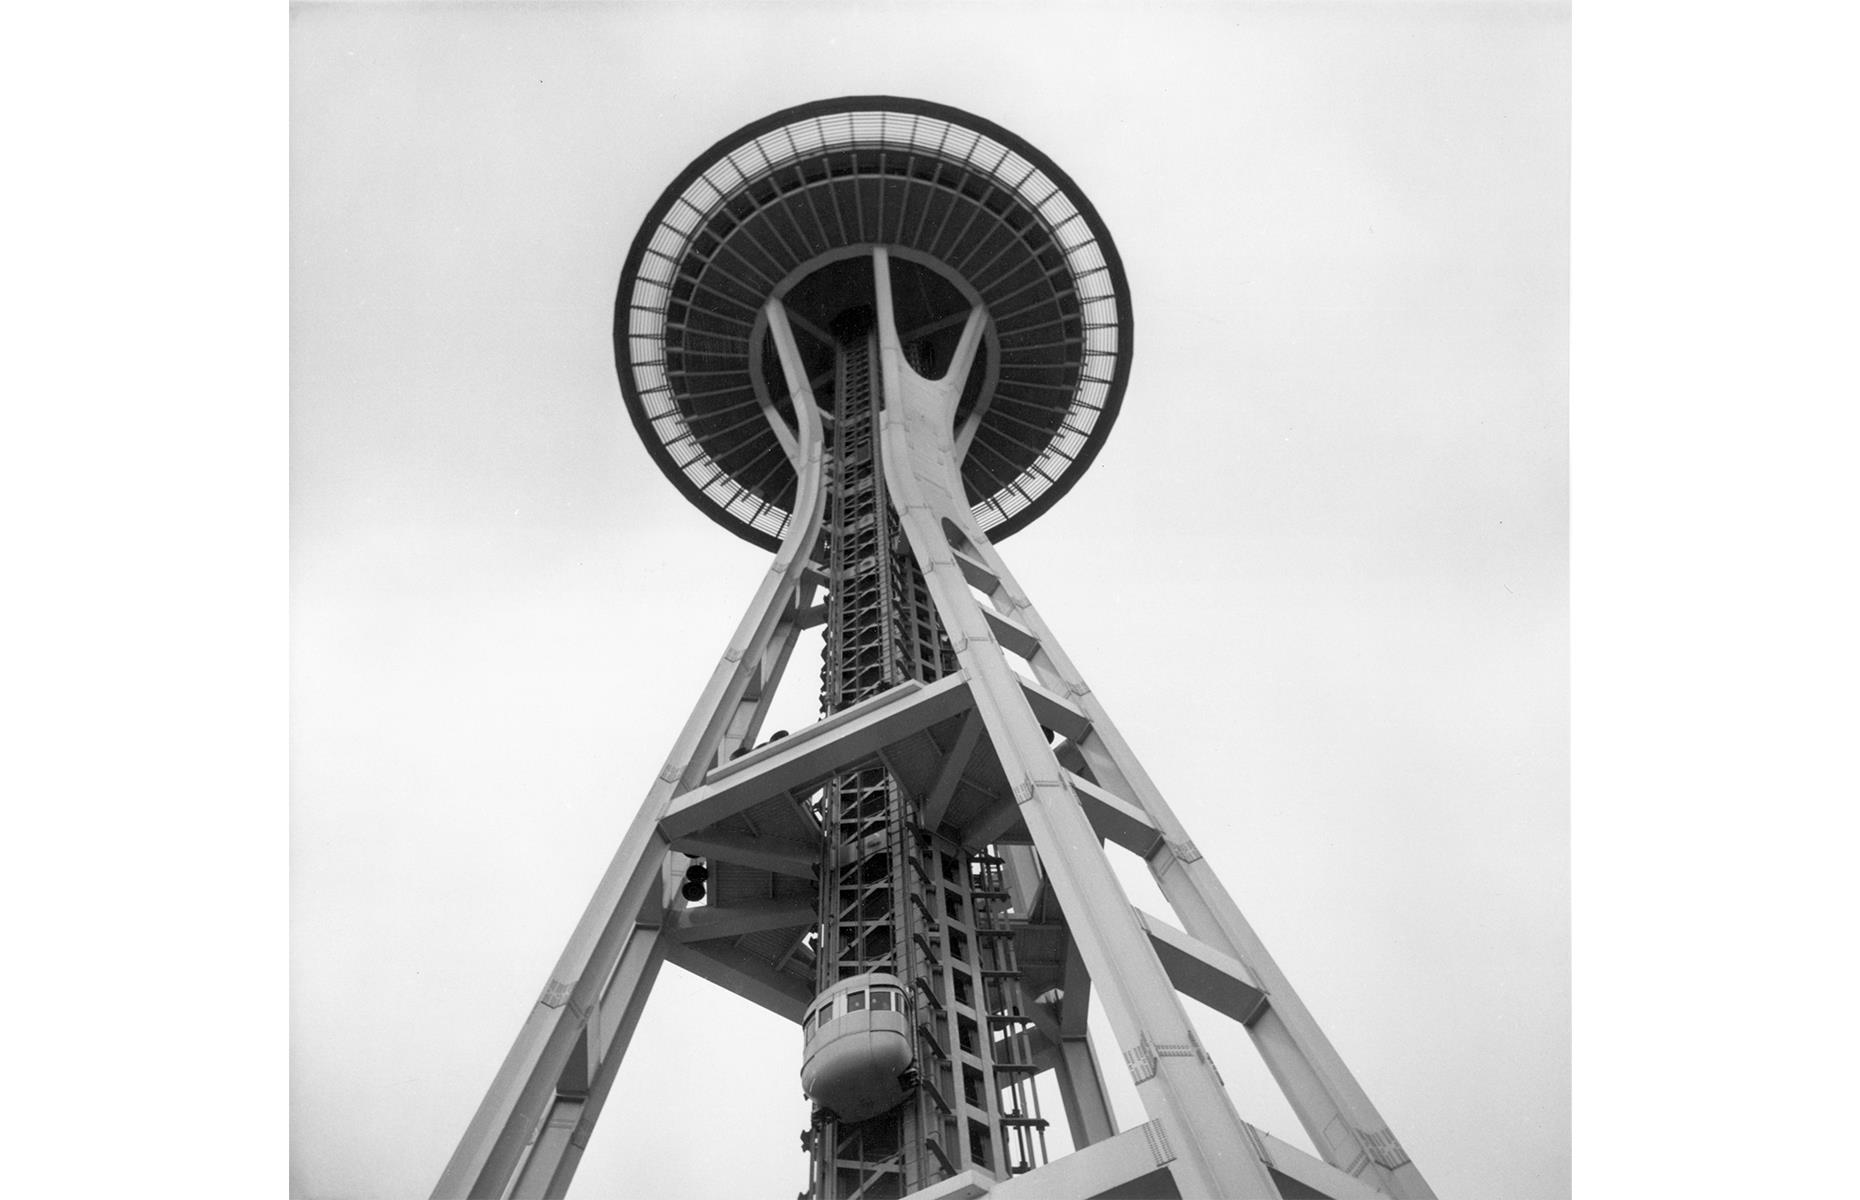 Slide 29 of 48: Seattle's futuristic landmark, the Space Needle, officially opened to the public on 21 April 1962. It was built as part of the Century 21 Exhibition, a space-age themed World Fair. During the event, more than 20,000 people used the elevator to reach its summit each day, drawing more than 2.3 million visitors overall. Usually around 1.3 million people now visit the 600-foot-tall structure each year.